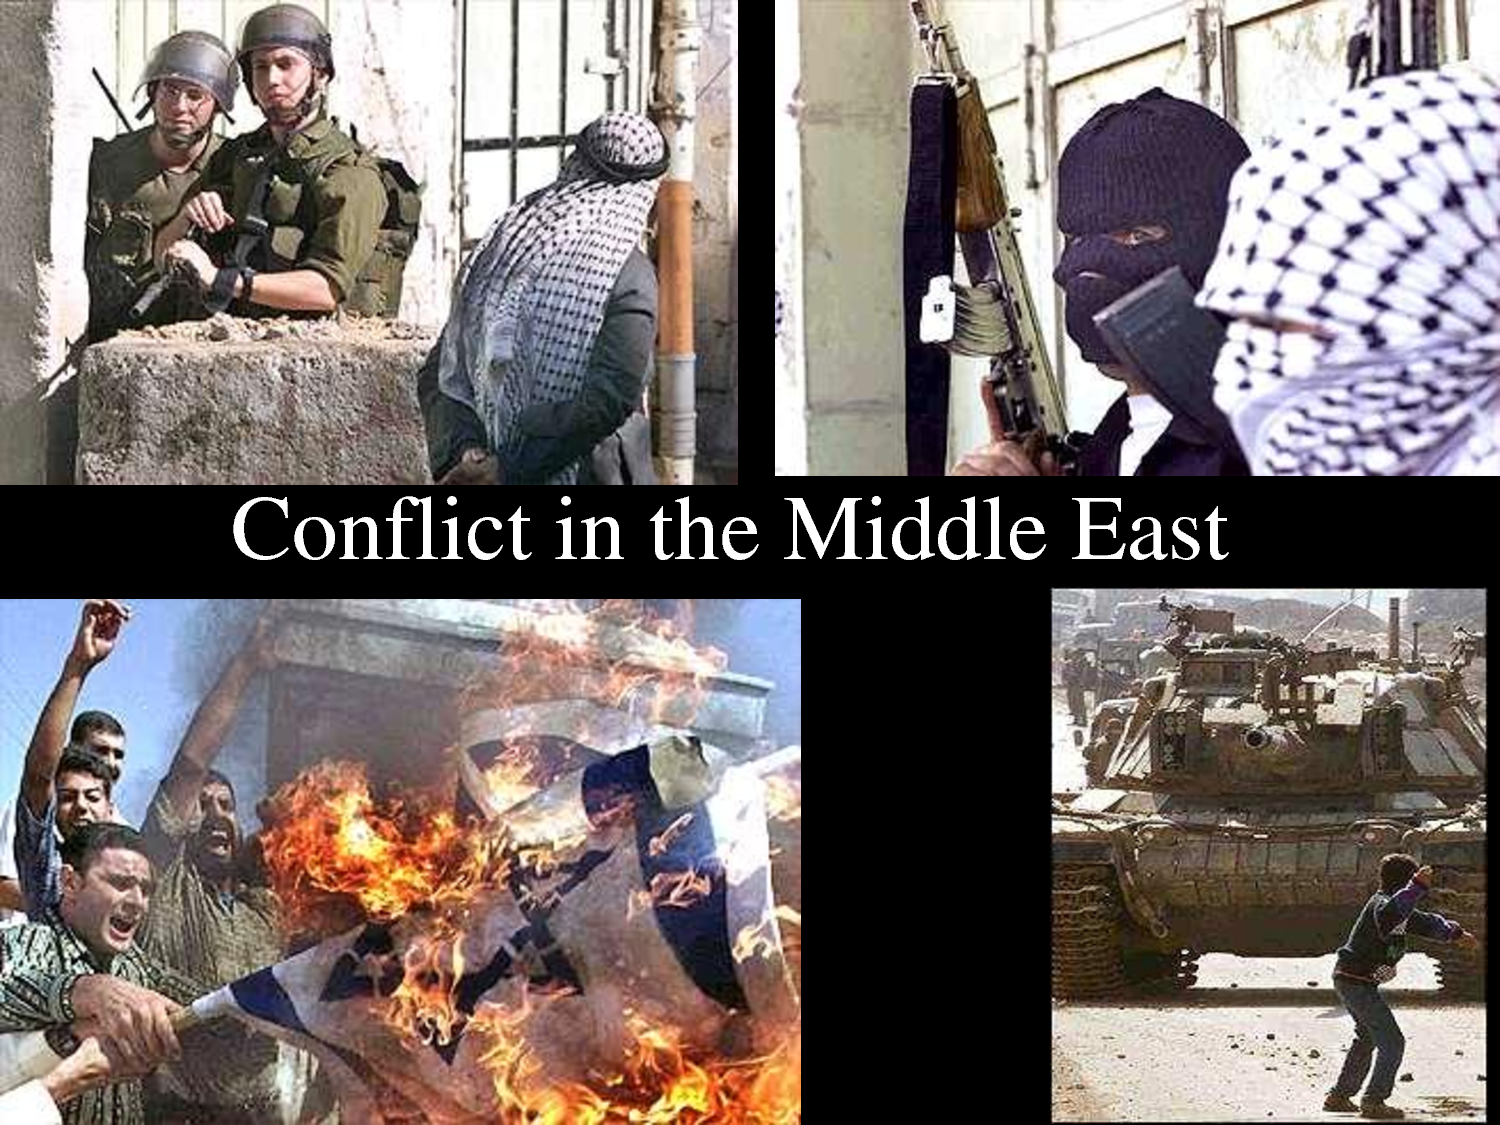 conflicts of the middle east Conflicts of the middle east today's lesson on the role of religion in the conflicts of the middle east can be one full of emotion and opinion for this reason, we're going to spend our time looking at the factual information surrounding this often tumultuous part of our world in doing this, we'll give a brief summary of three of the.